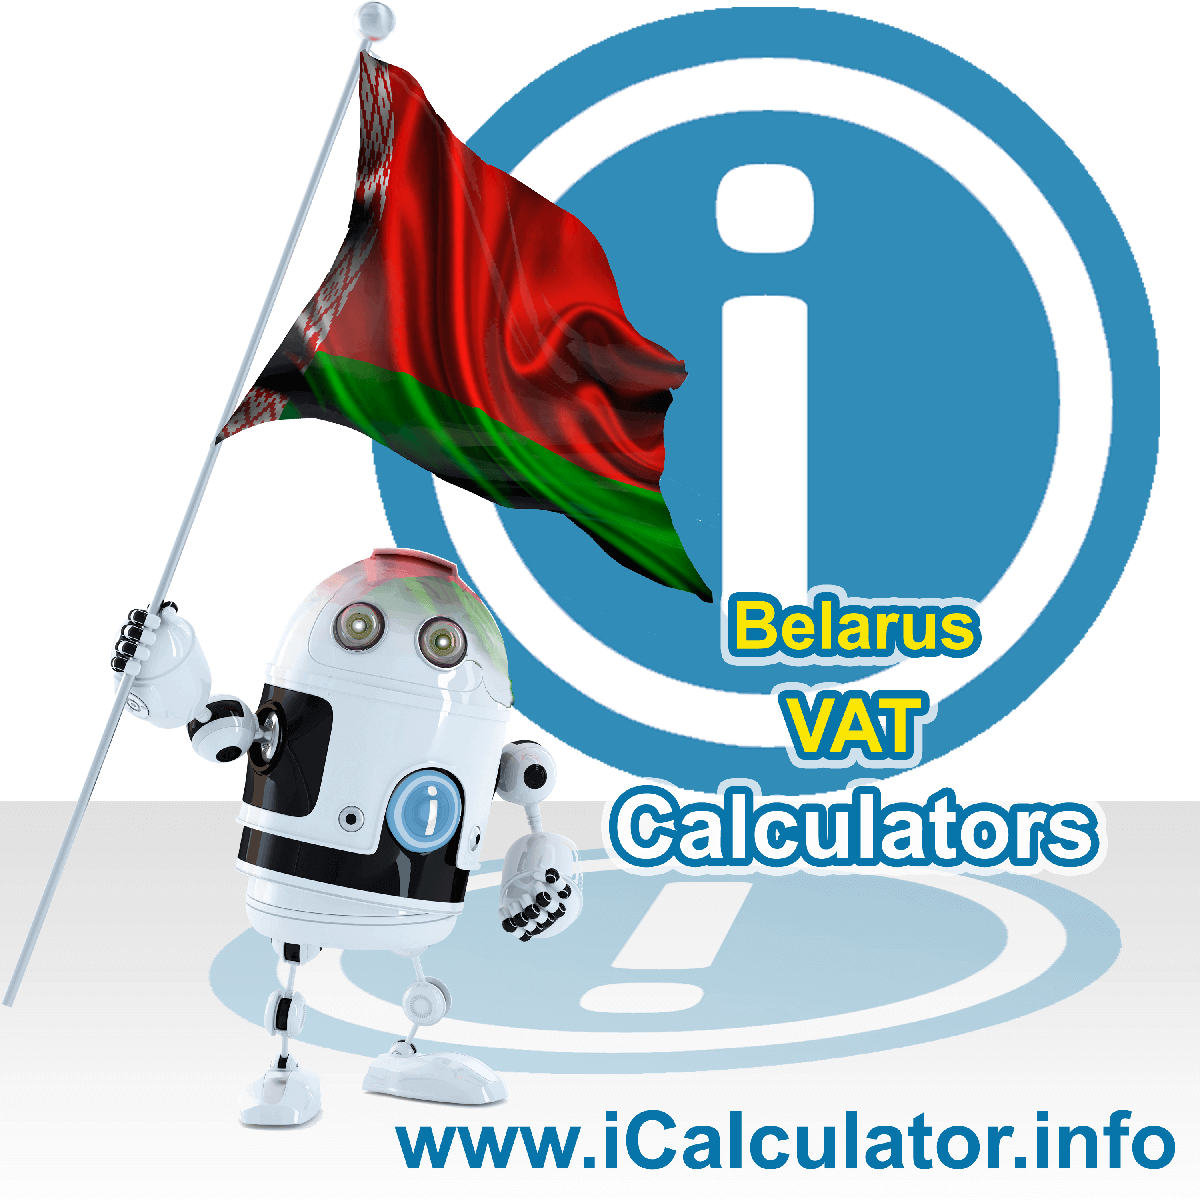 Belarus VAT Calculator. This image shows the Belarus flag and information relating to the VAT formula used for calculating Value Added Tax in Belarus using the Belarus VAT Calculator in 2020